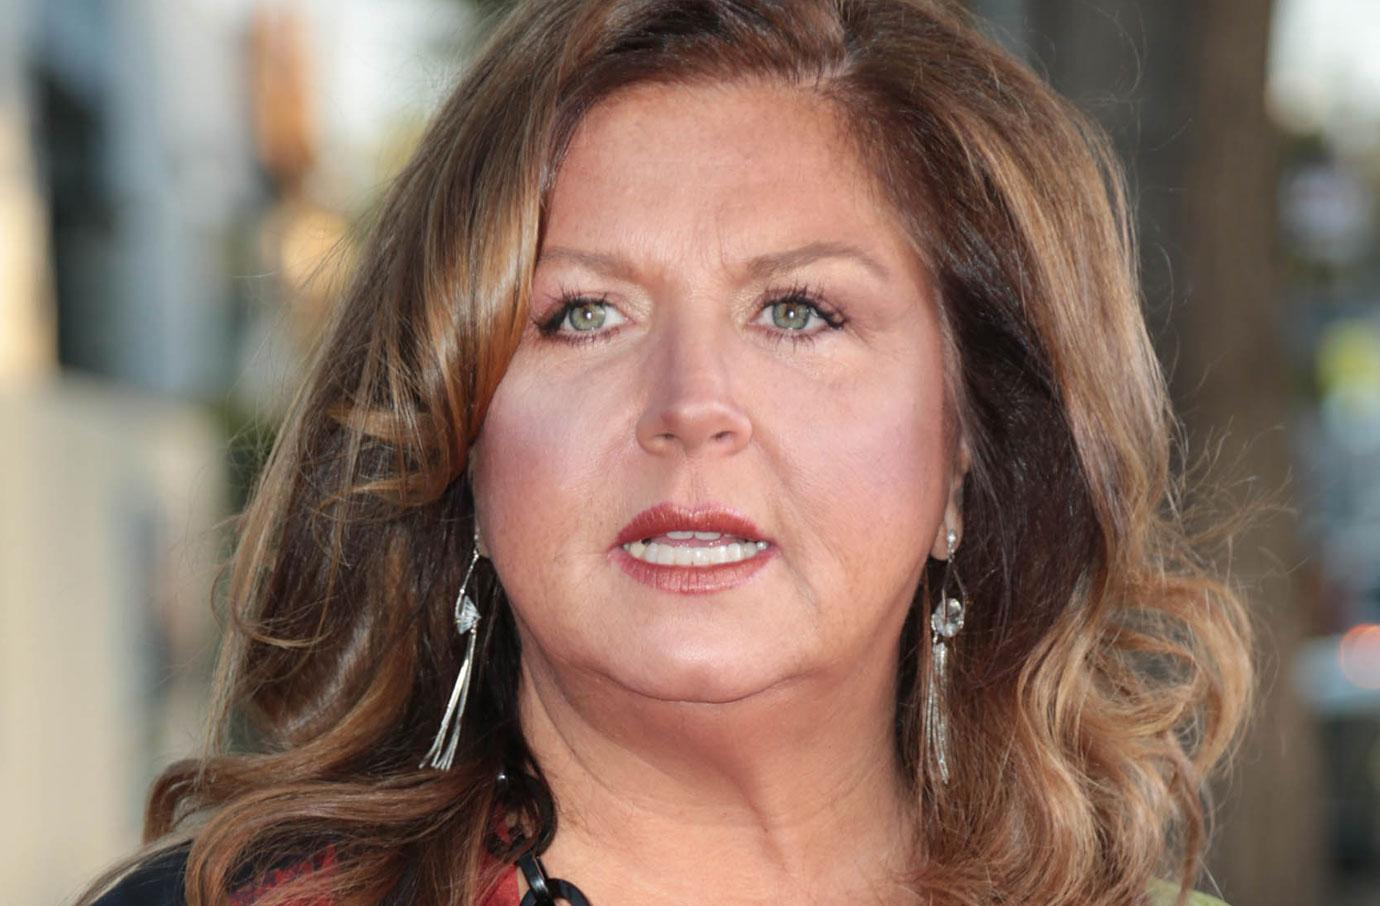 abby lee miller prison sexual assault harassment claims